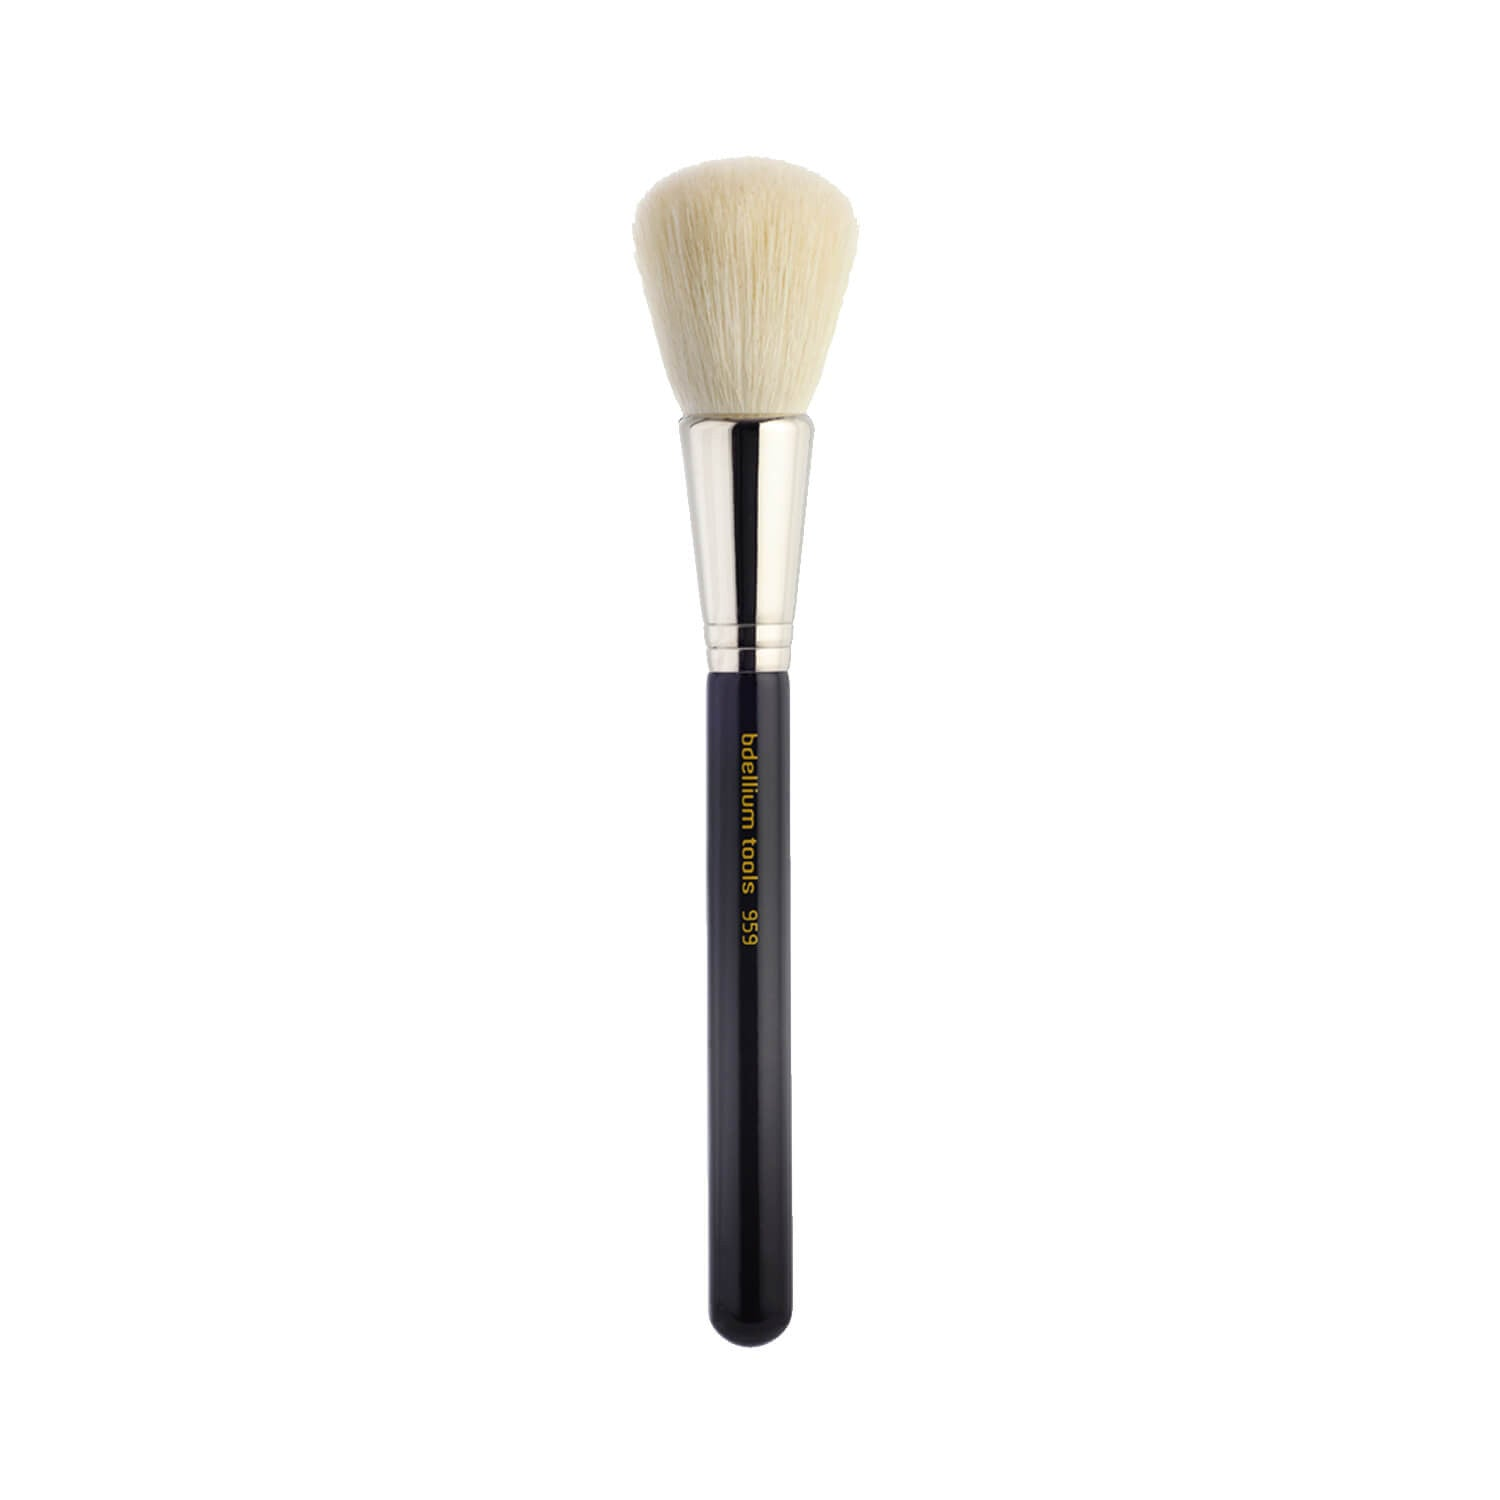 BDellium Tools Maestro Line 959 Powder Blending Brush Black